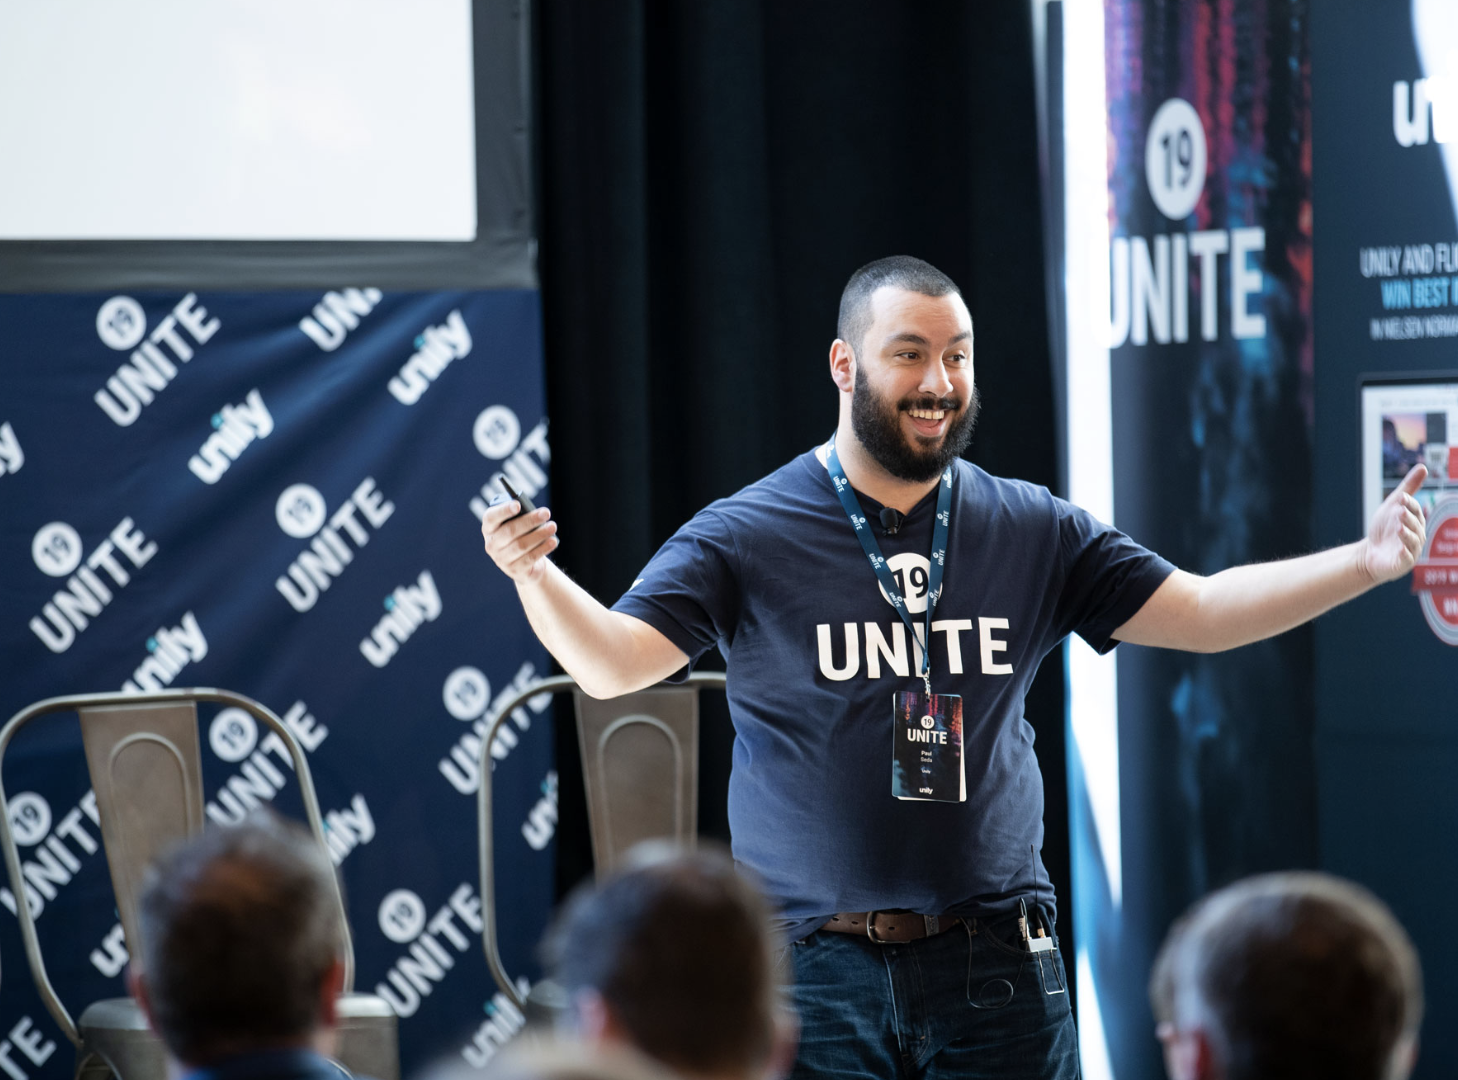 Unite-2019-digital-workplace-conference